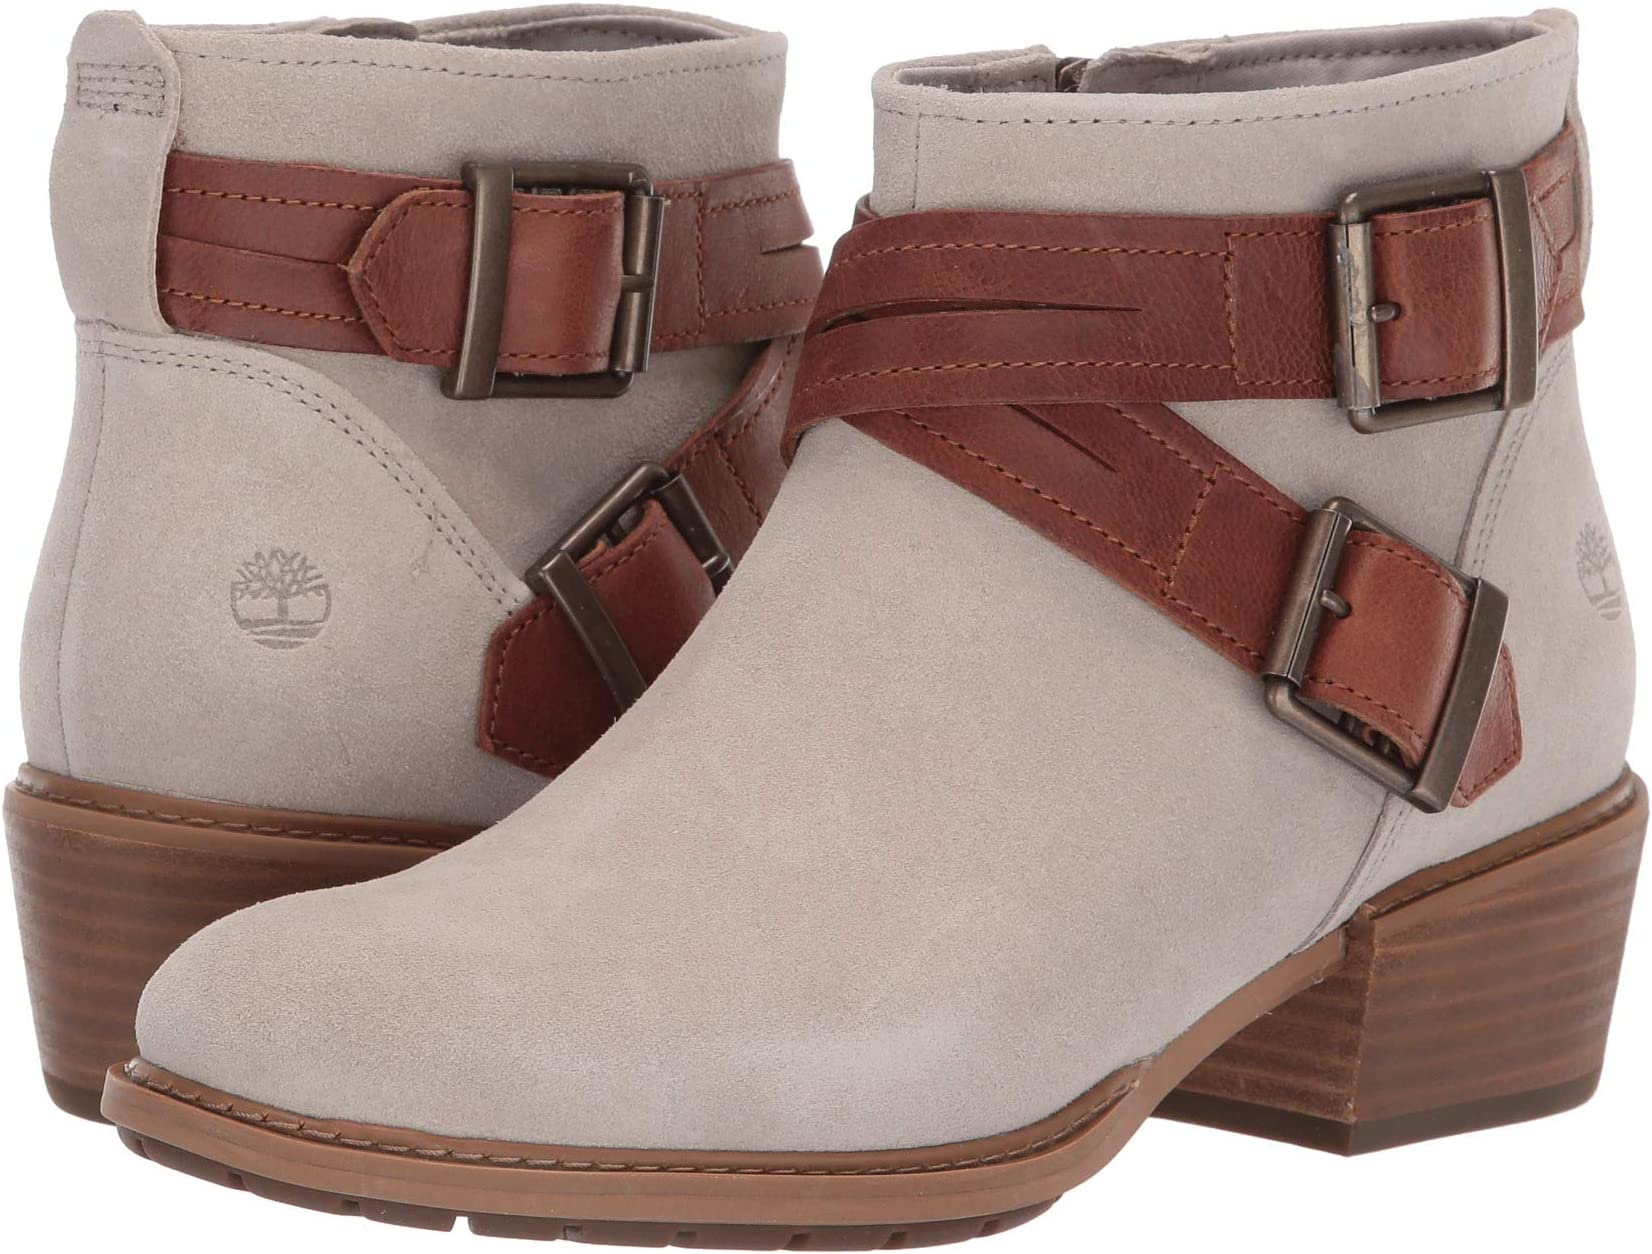 944566bc3e5 Timberland Boots & Shoes | Shipped FREE at Zappos | Zappos.com